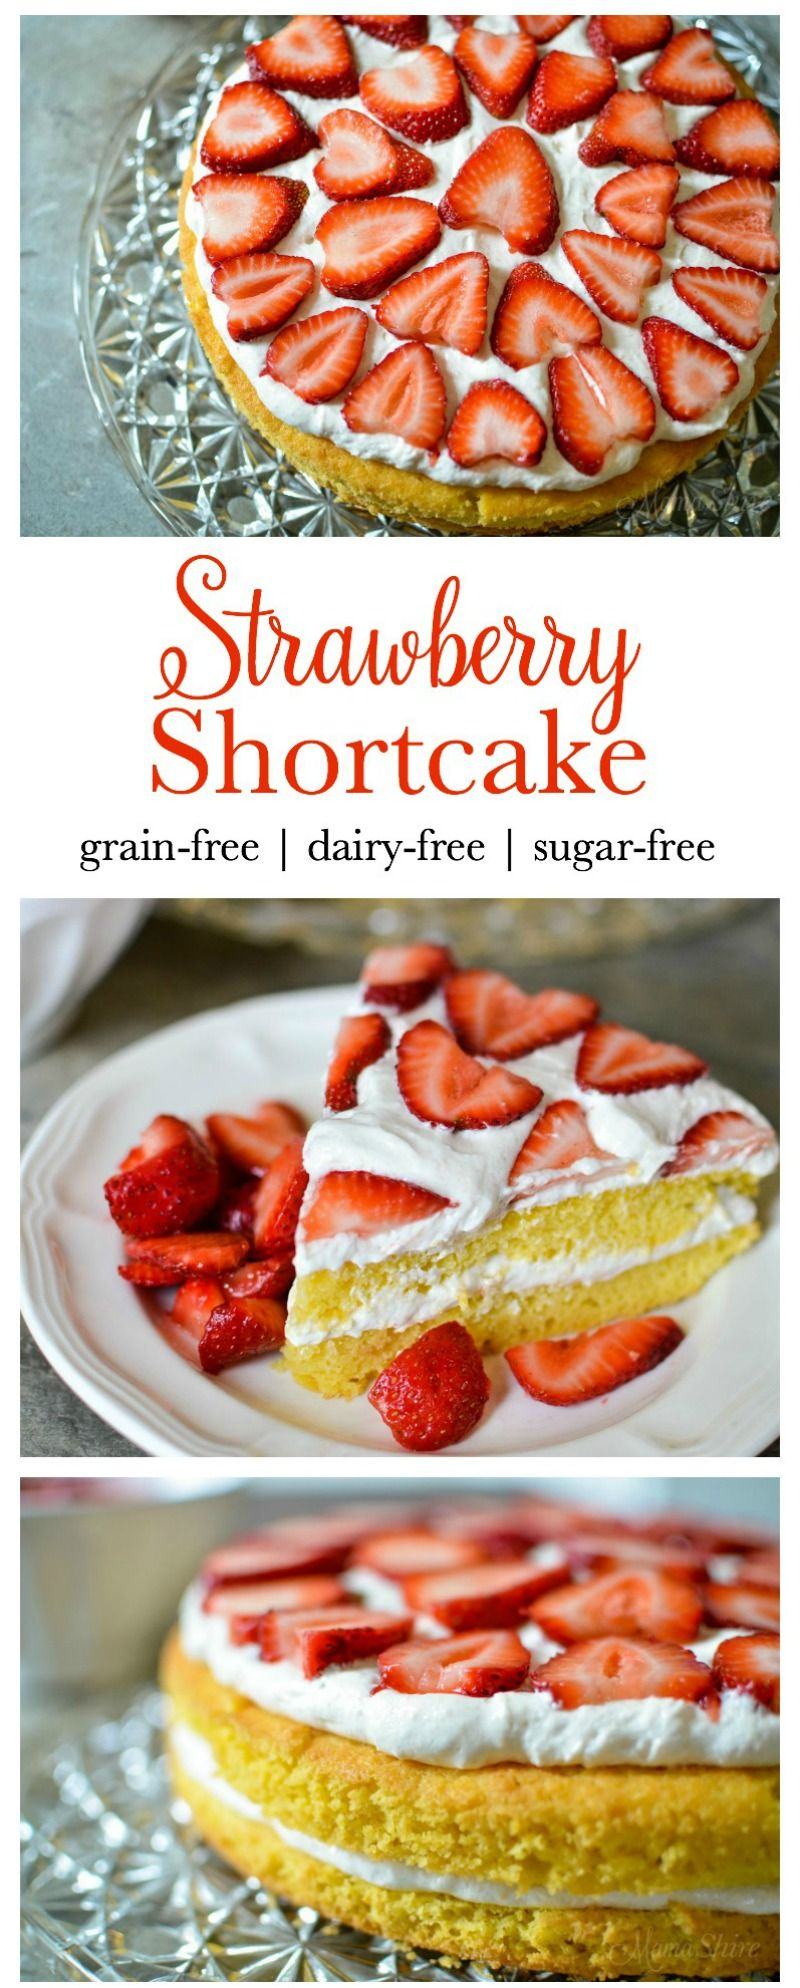 A delicious and healthy Strawberry Shortcake. Yummy shortcake with dairy-free frosting. Grain-free, Sugar-free, Low-carb Trim Healthy Mama - S